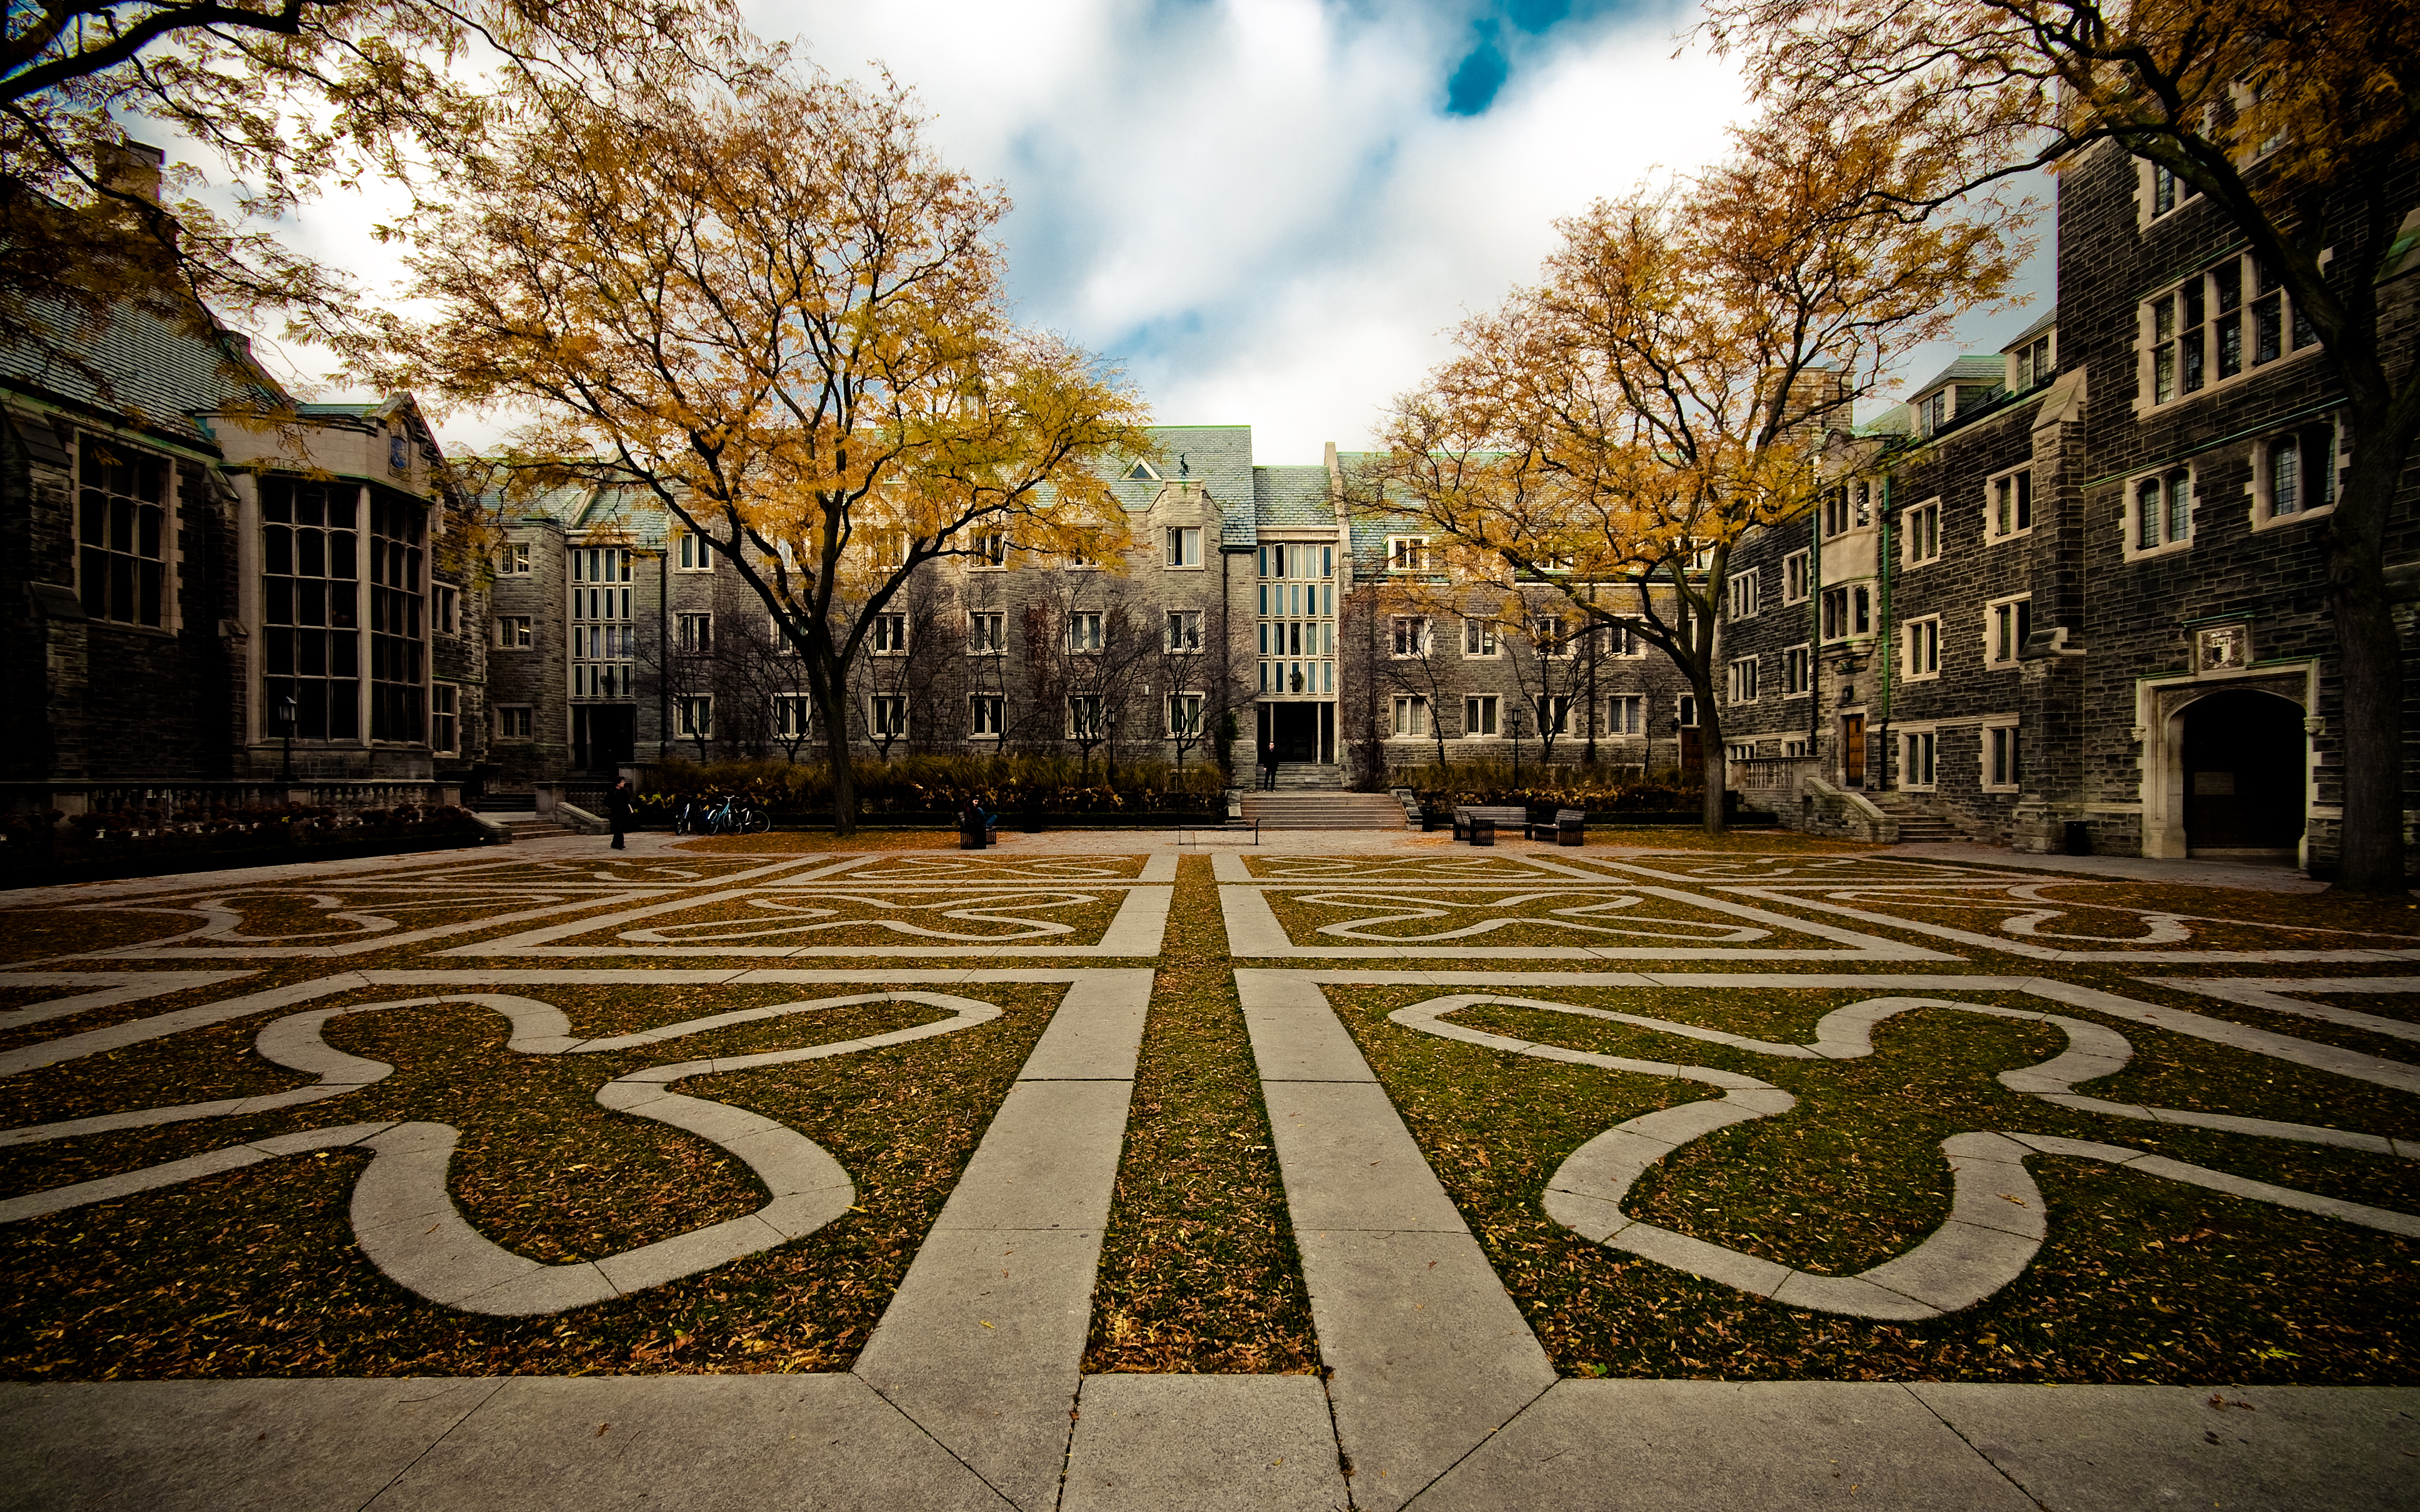 So I'm a Trinity College Applicant at University of Toronto St.